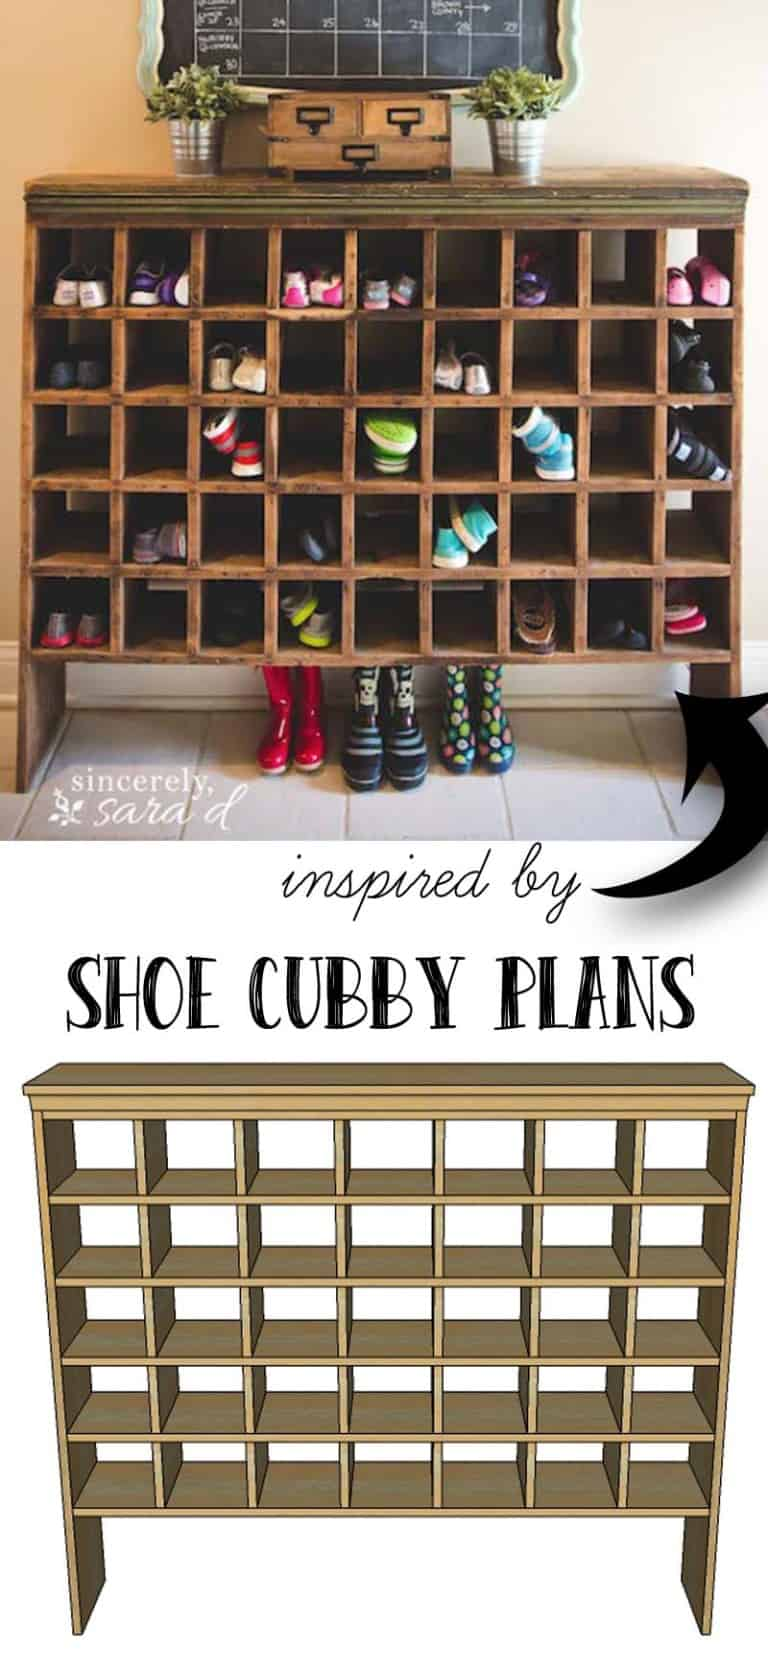 DIY Shoe Cubby plans for your shoe organization at home.